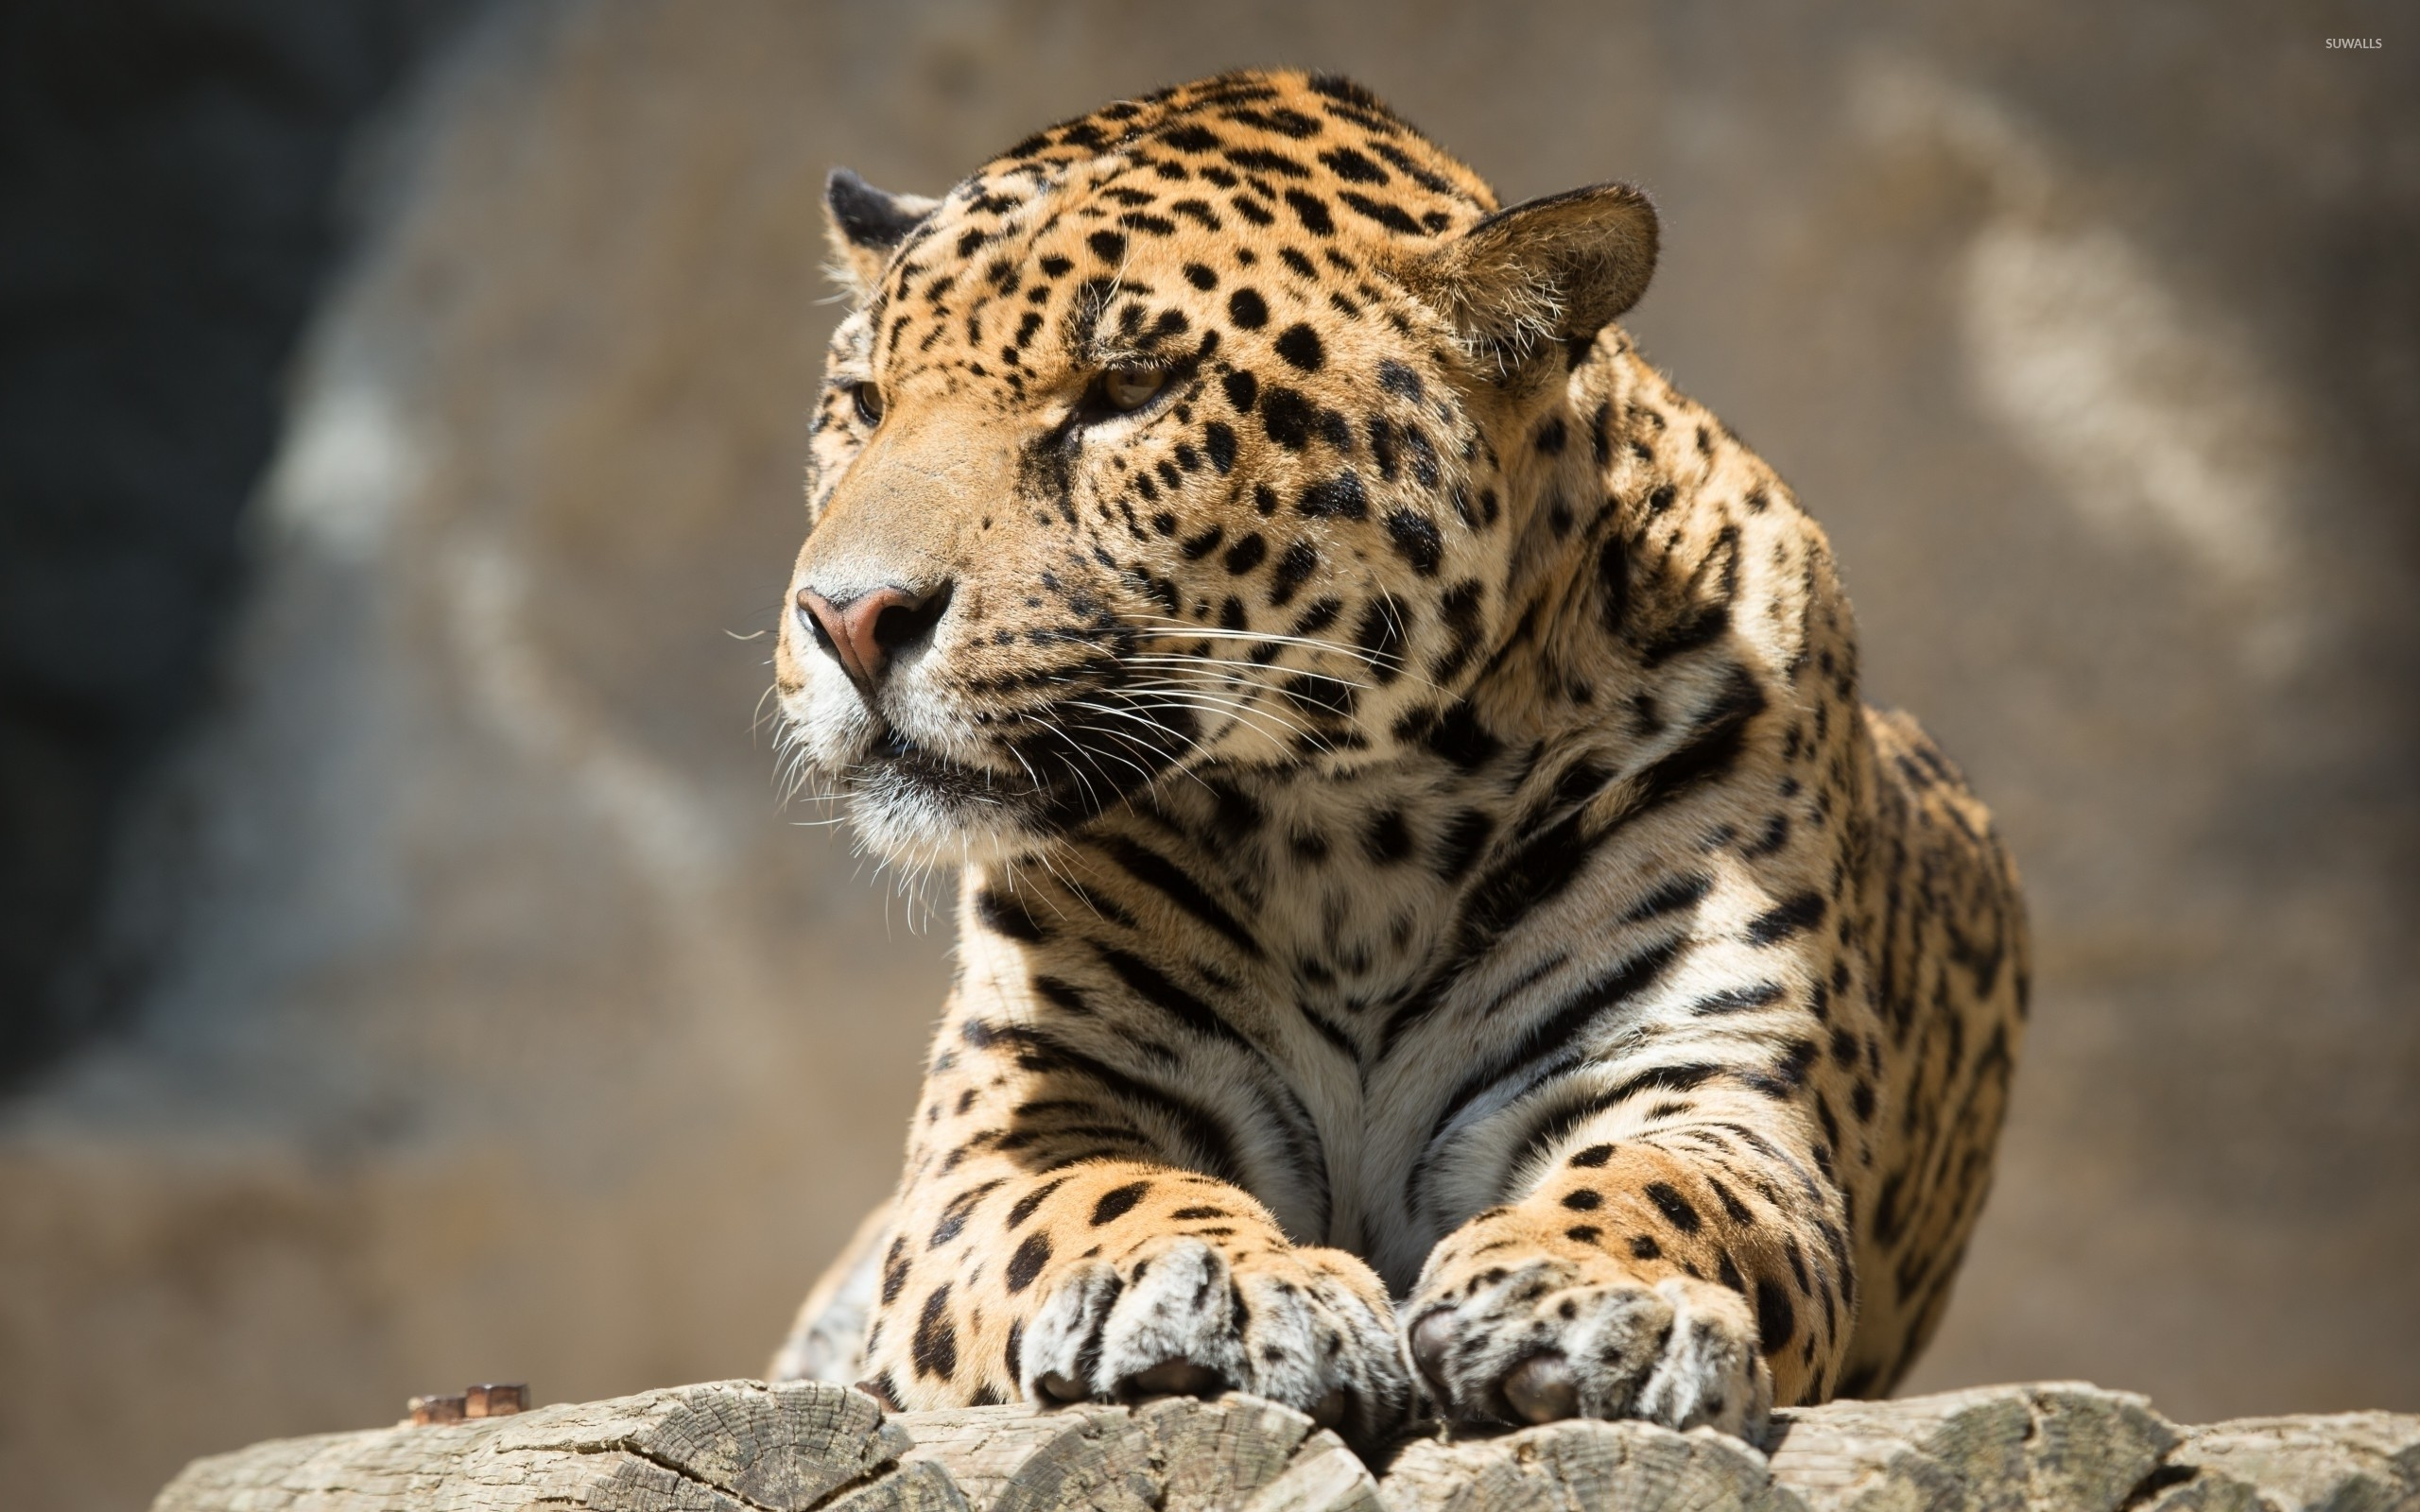 2560x1600 Jaguar resting on tree logs wallpaper  jpg